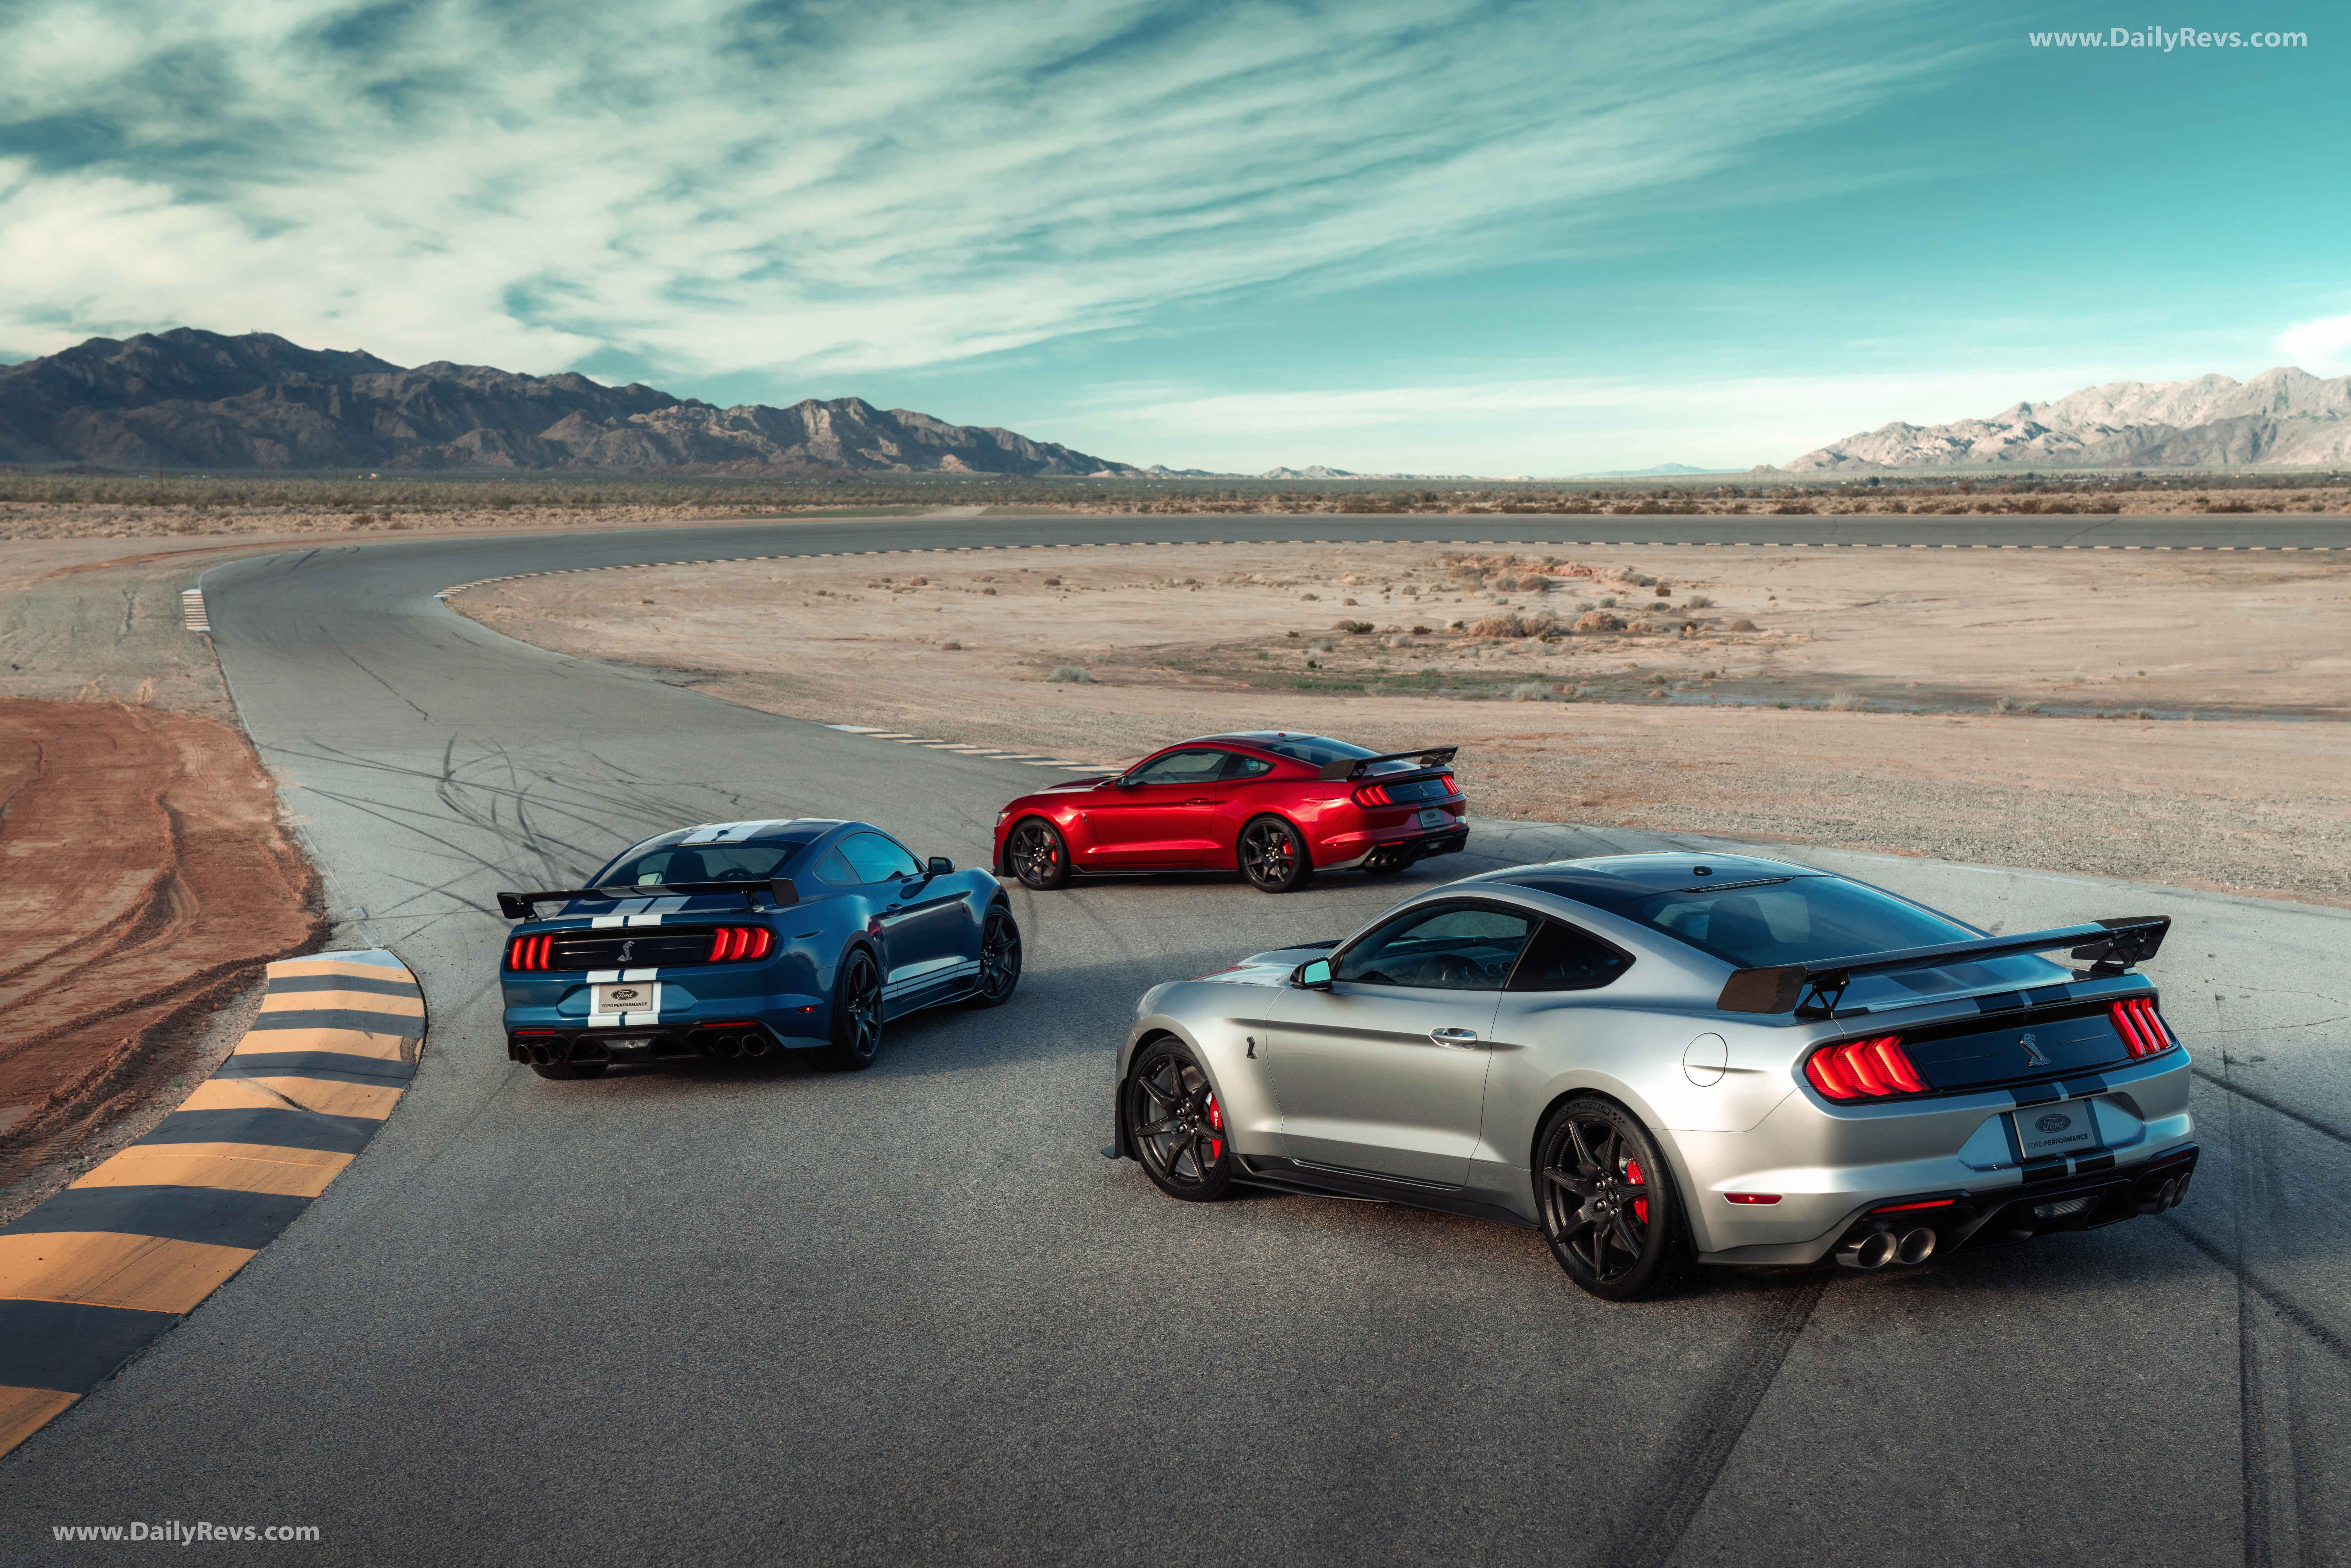 2020 ford mustang shelby gt500 - hd pictures, videos